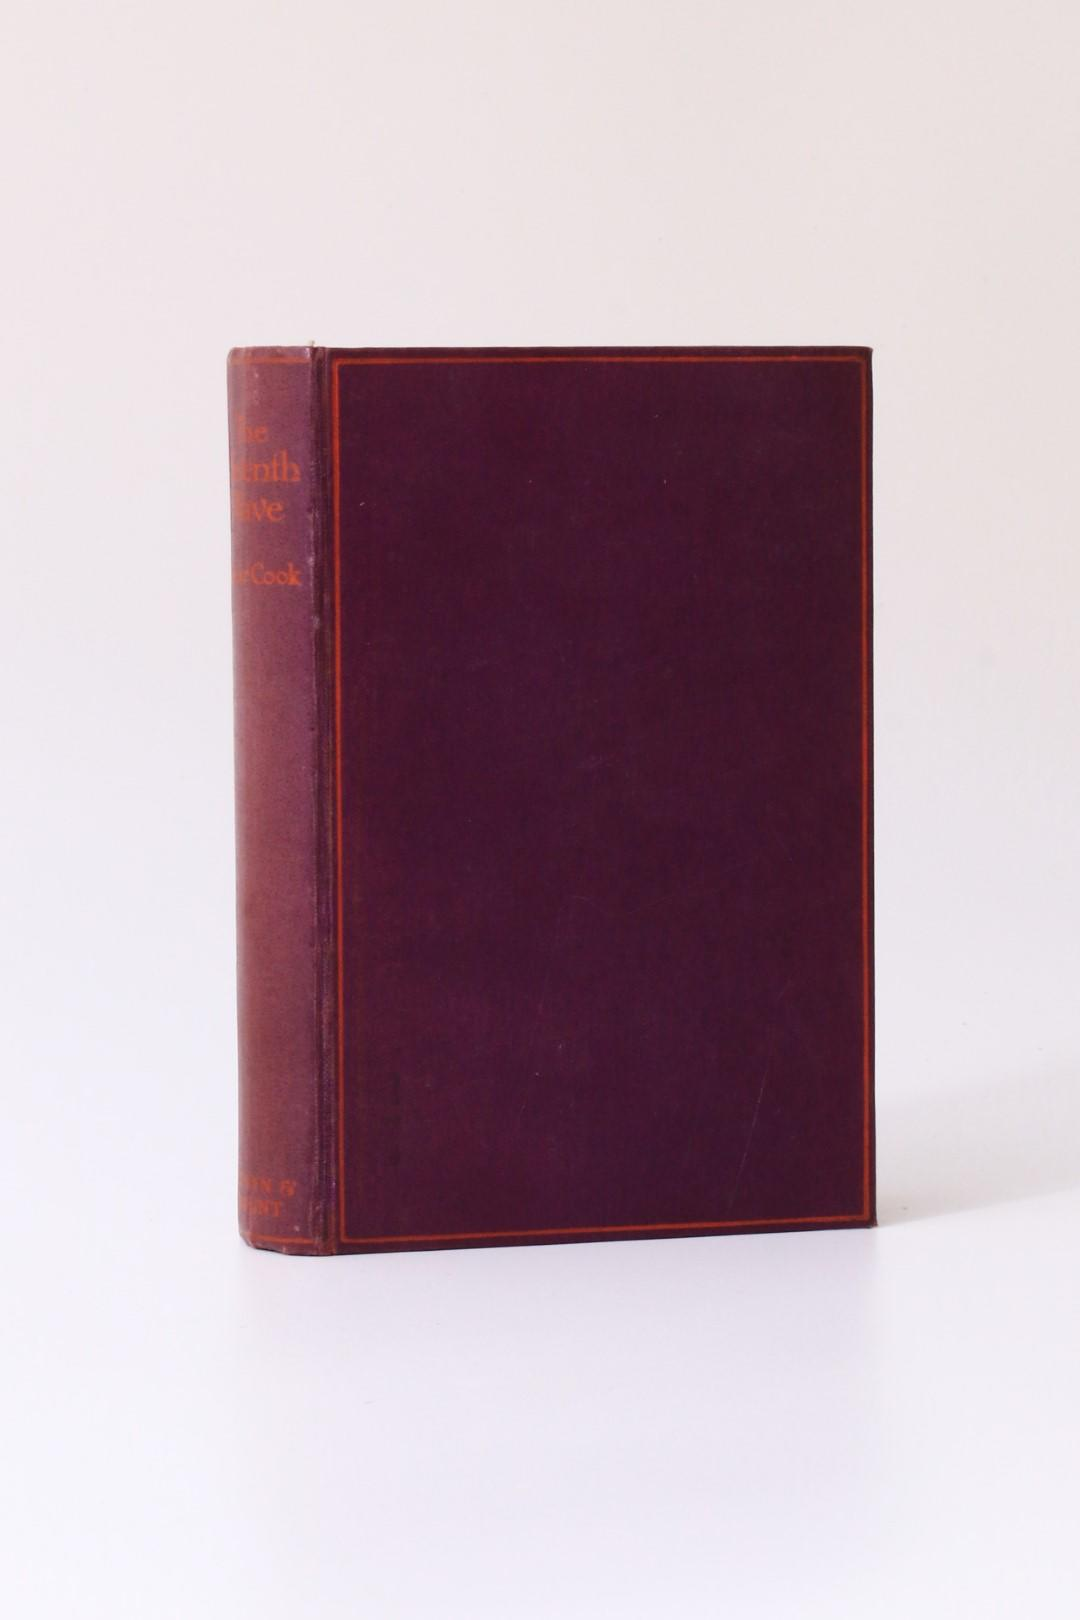 Oscar Cook - The Seventh Wave - Selwyn & Blount, 1926, First Edition.